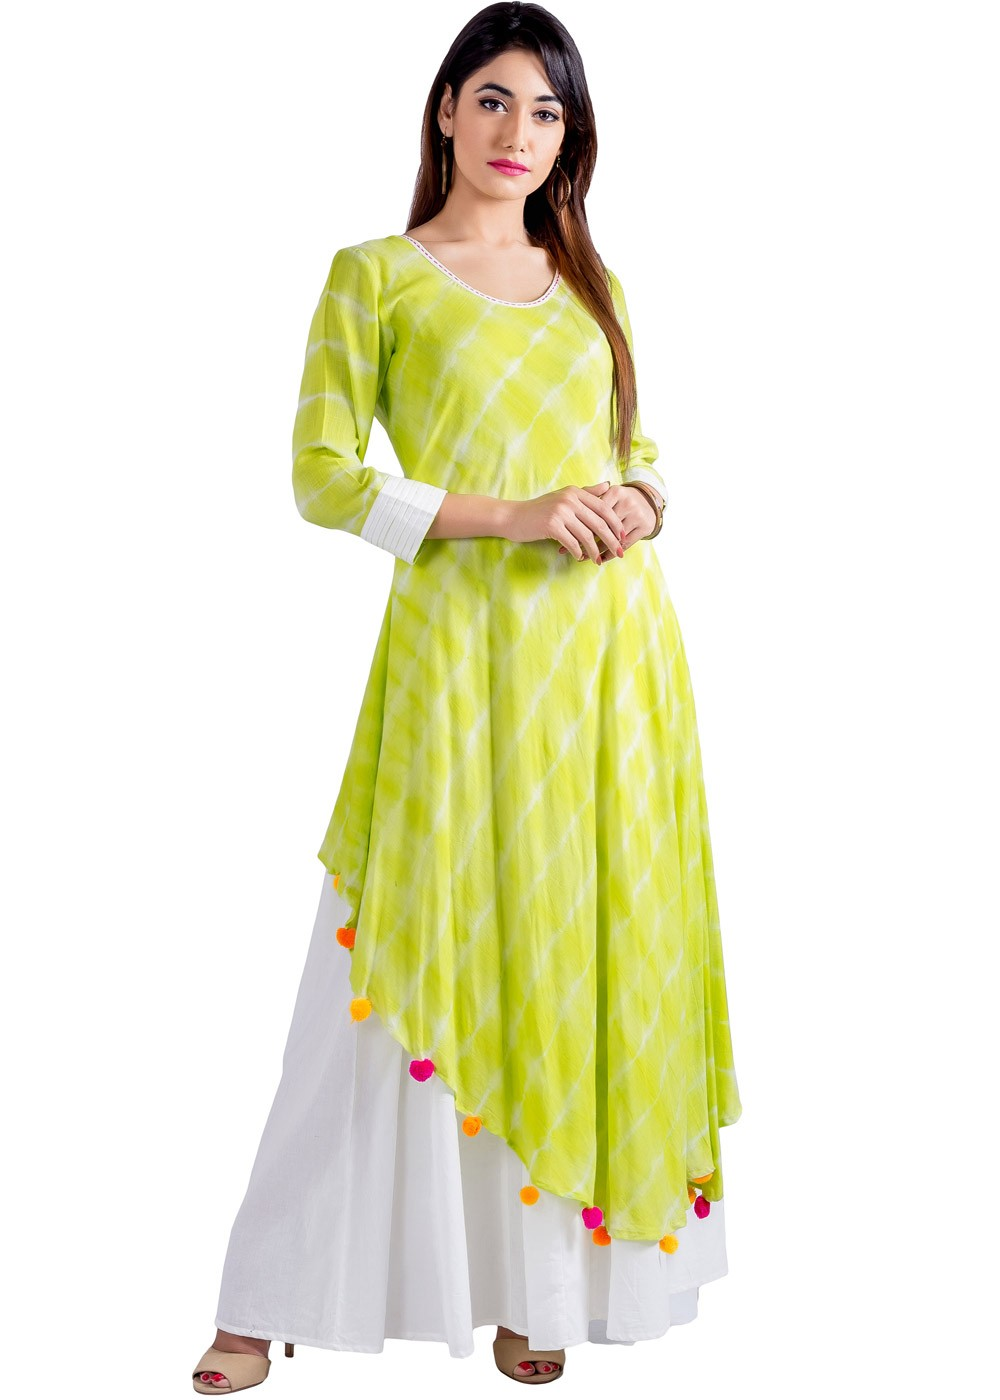 92561bc9f59 Indo Western Dress  Buy Readymade Lime Green Cotton Indian Tunics for Women  ...